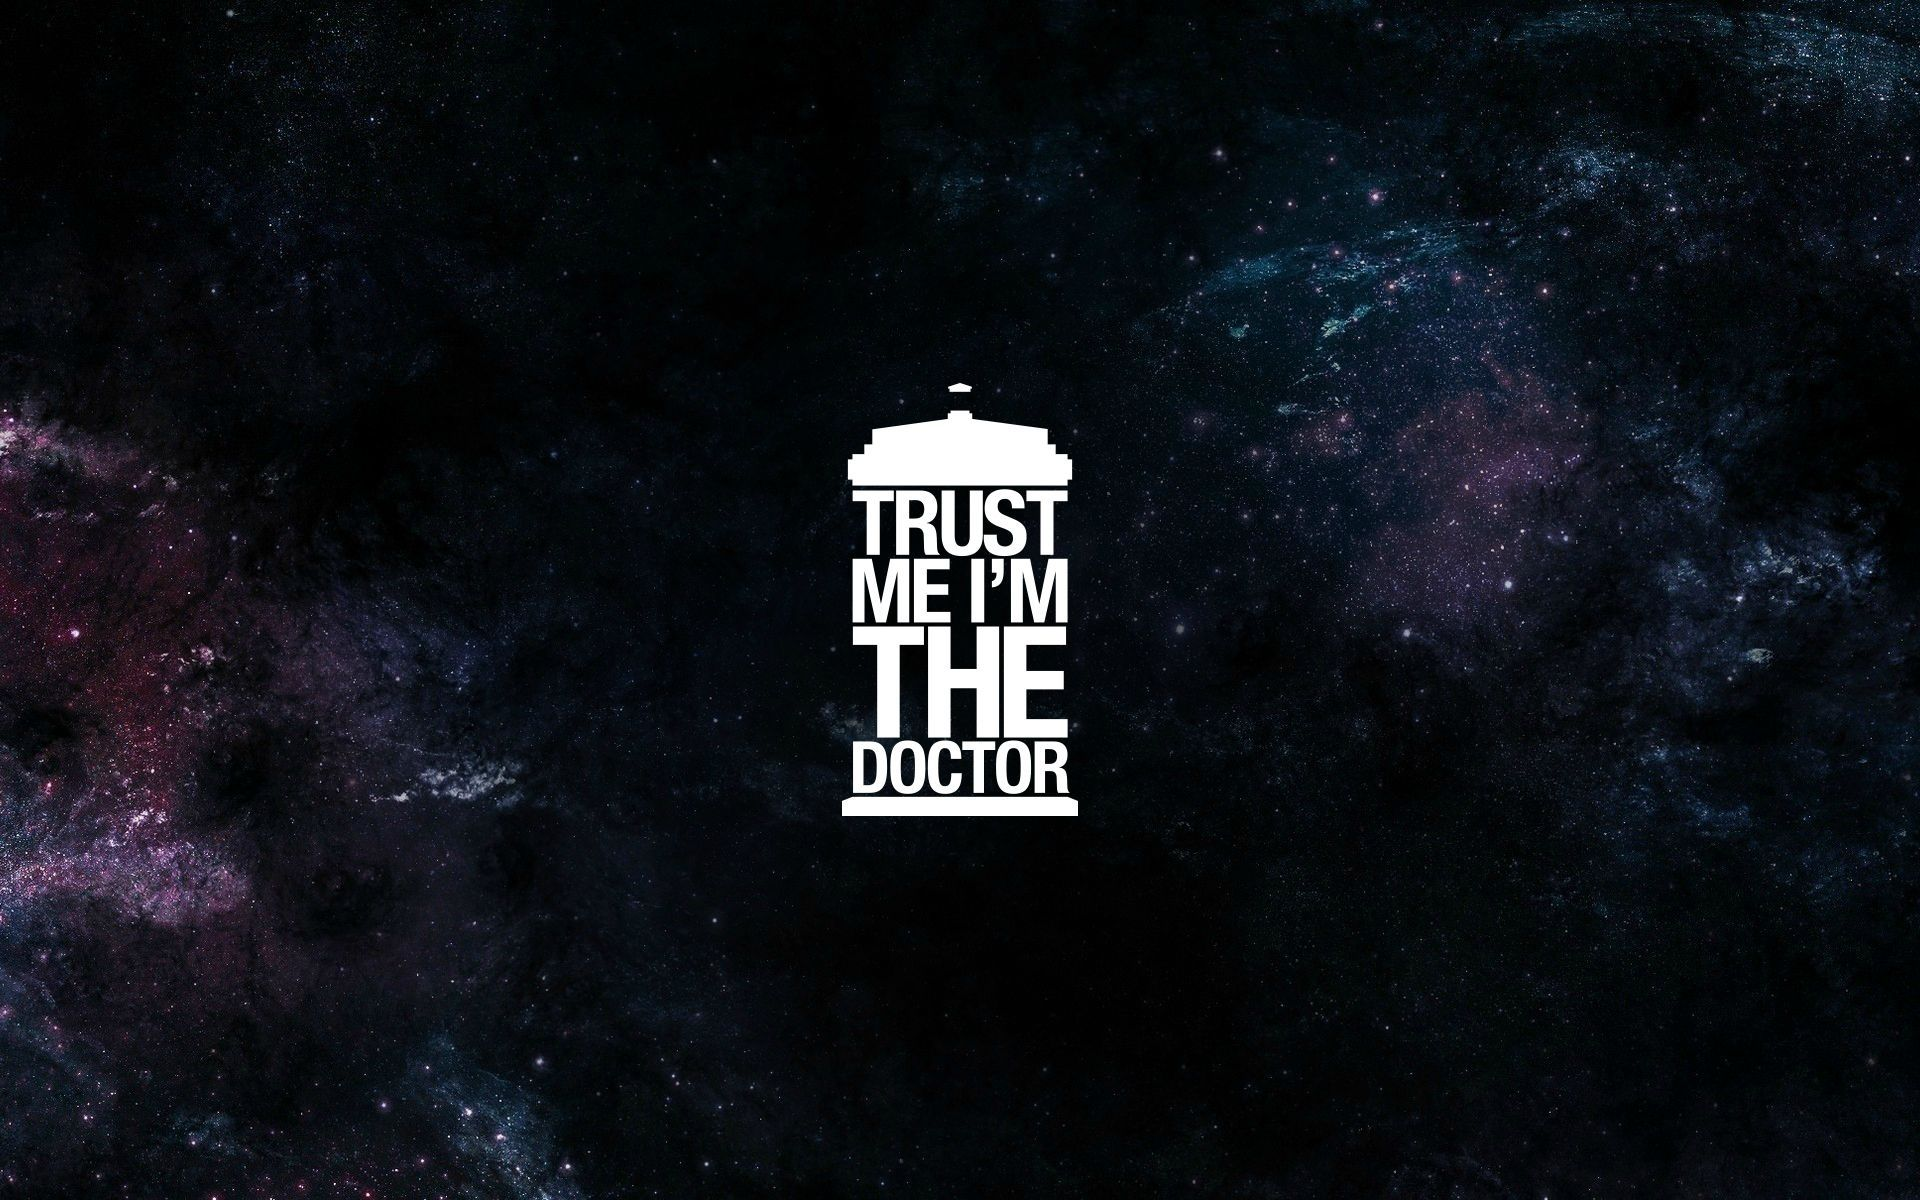 10 New Hd Doctor Who Backgrounds Full Hd 1080p For Pc Desktop Doctor Who Wallpaper Tardis Wallpaper Doctor Who Art